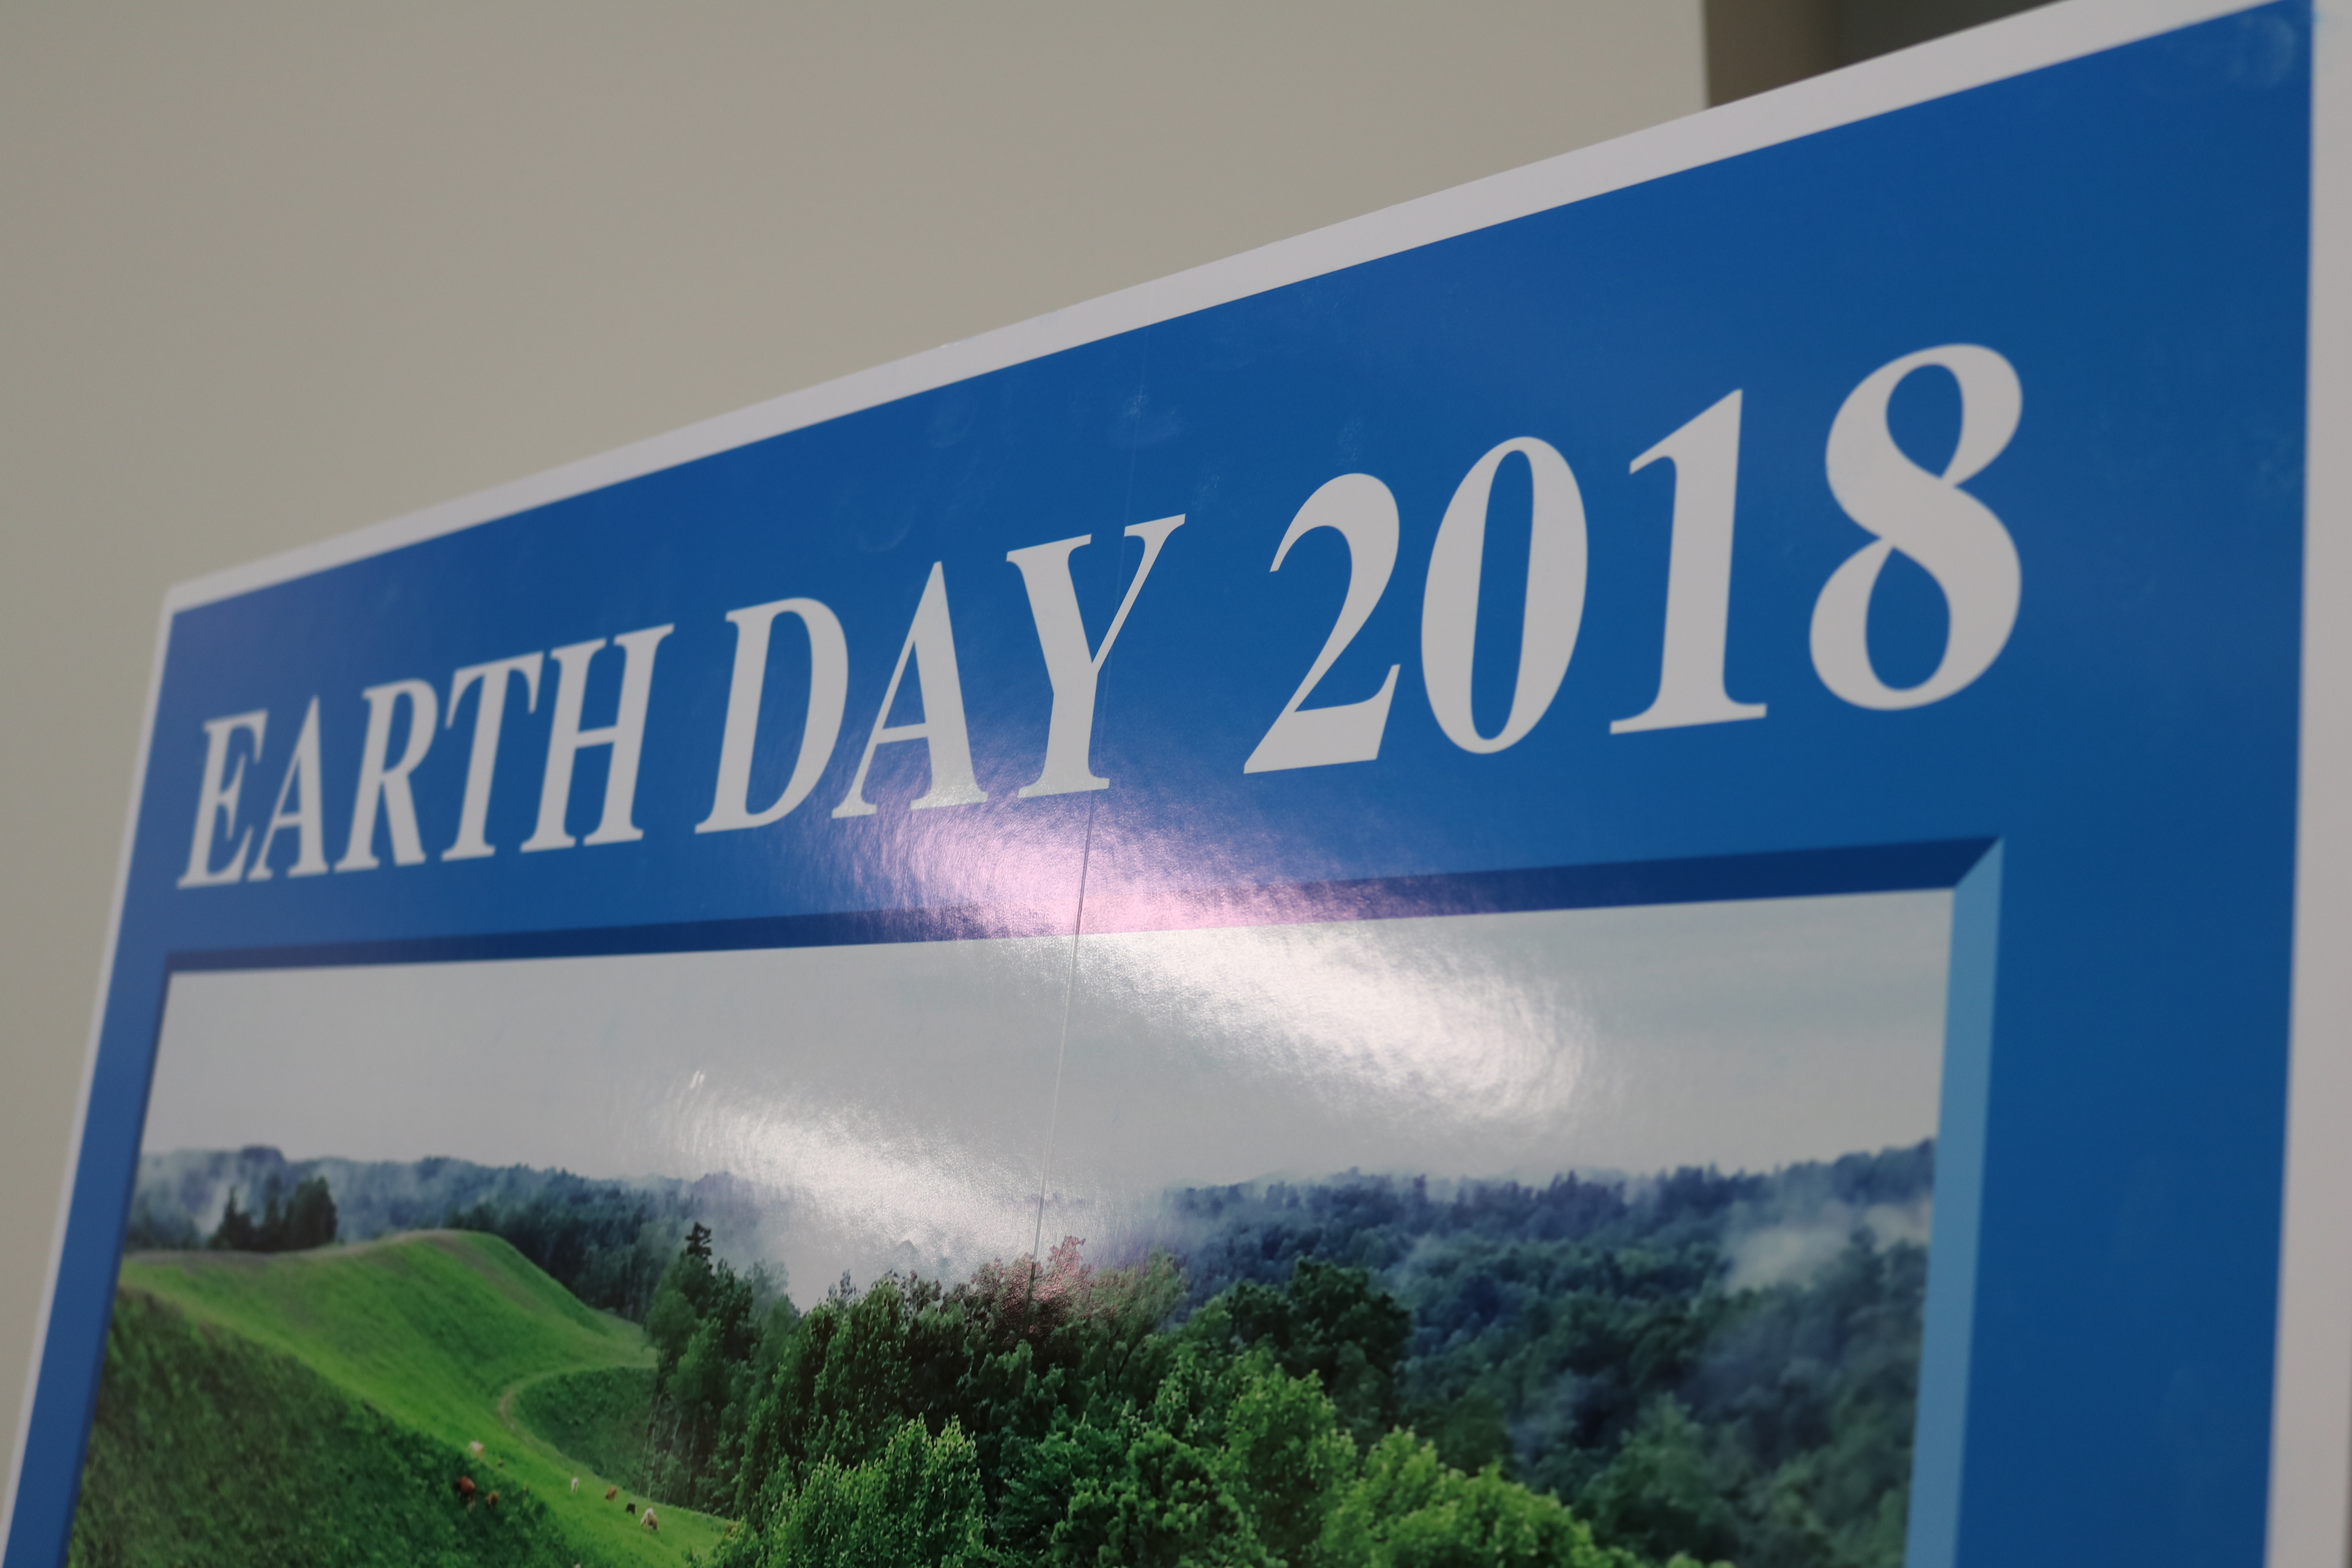 The Energy and Environment Cabinet's 2018 Earth Day celebration